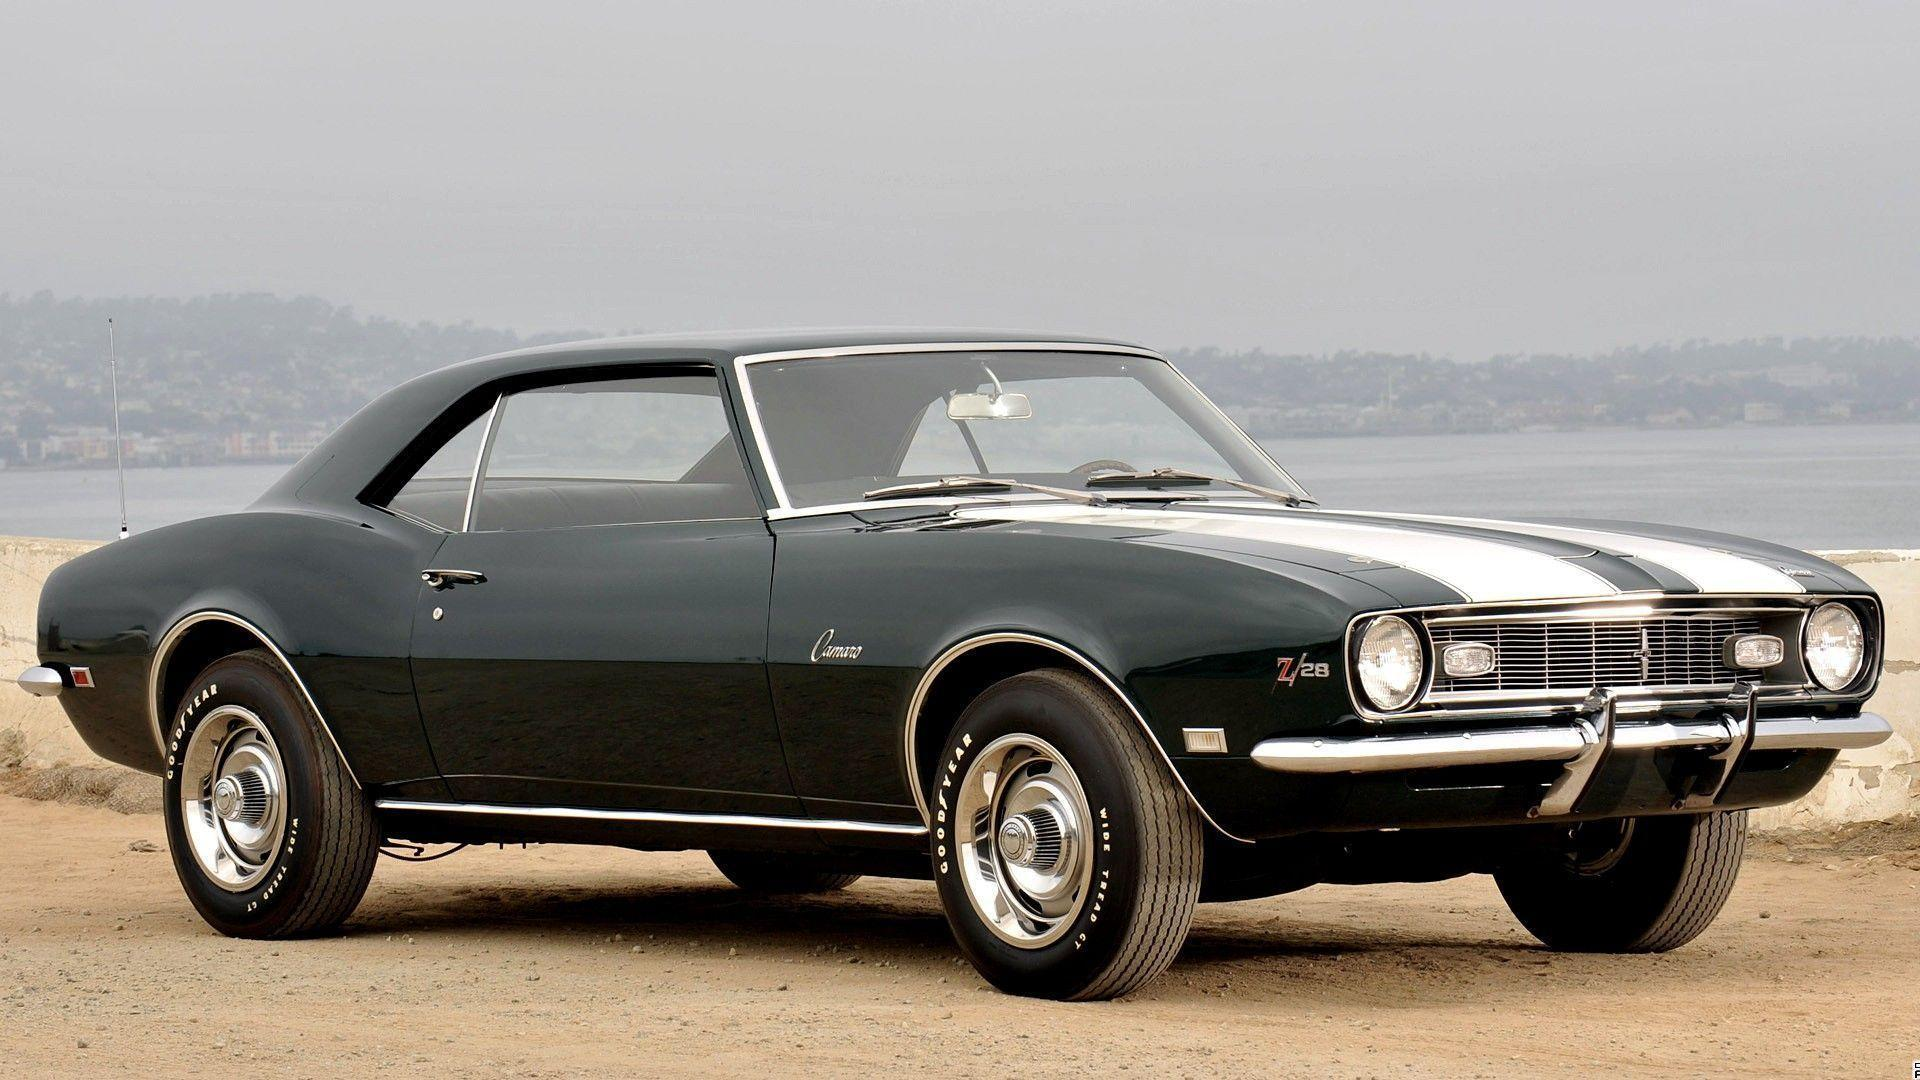 new wallpapers muscle car - photo #26